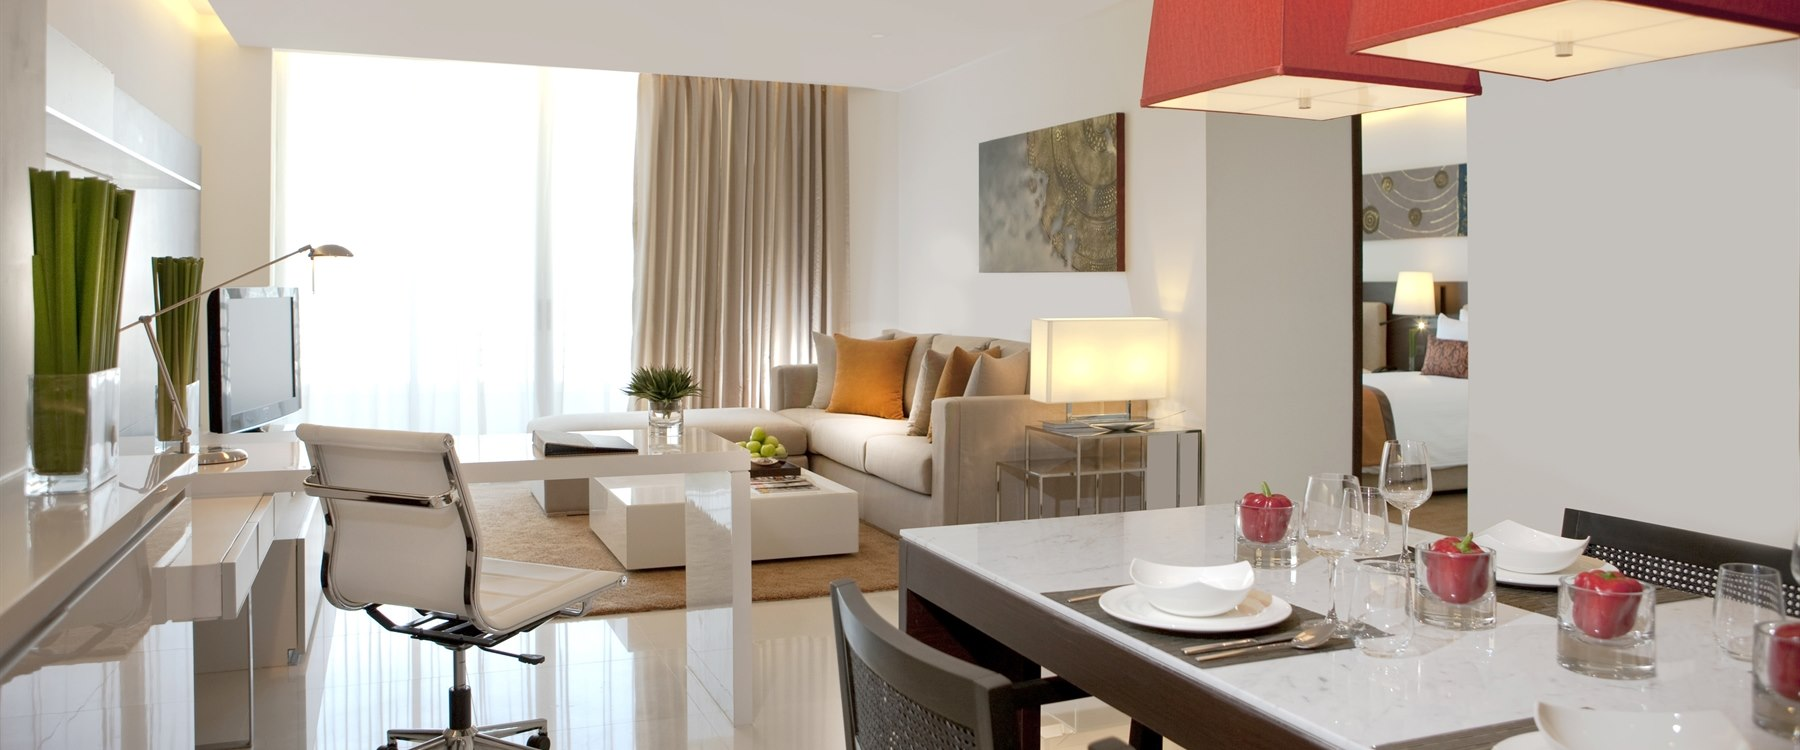 Two bedroom suite dining area at Anantara Bangkok Sathorn